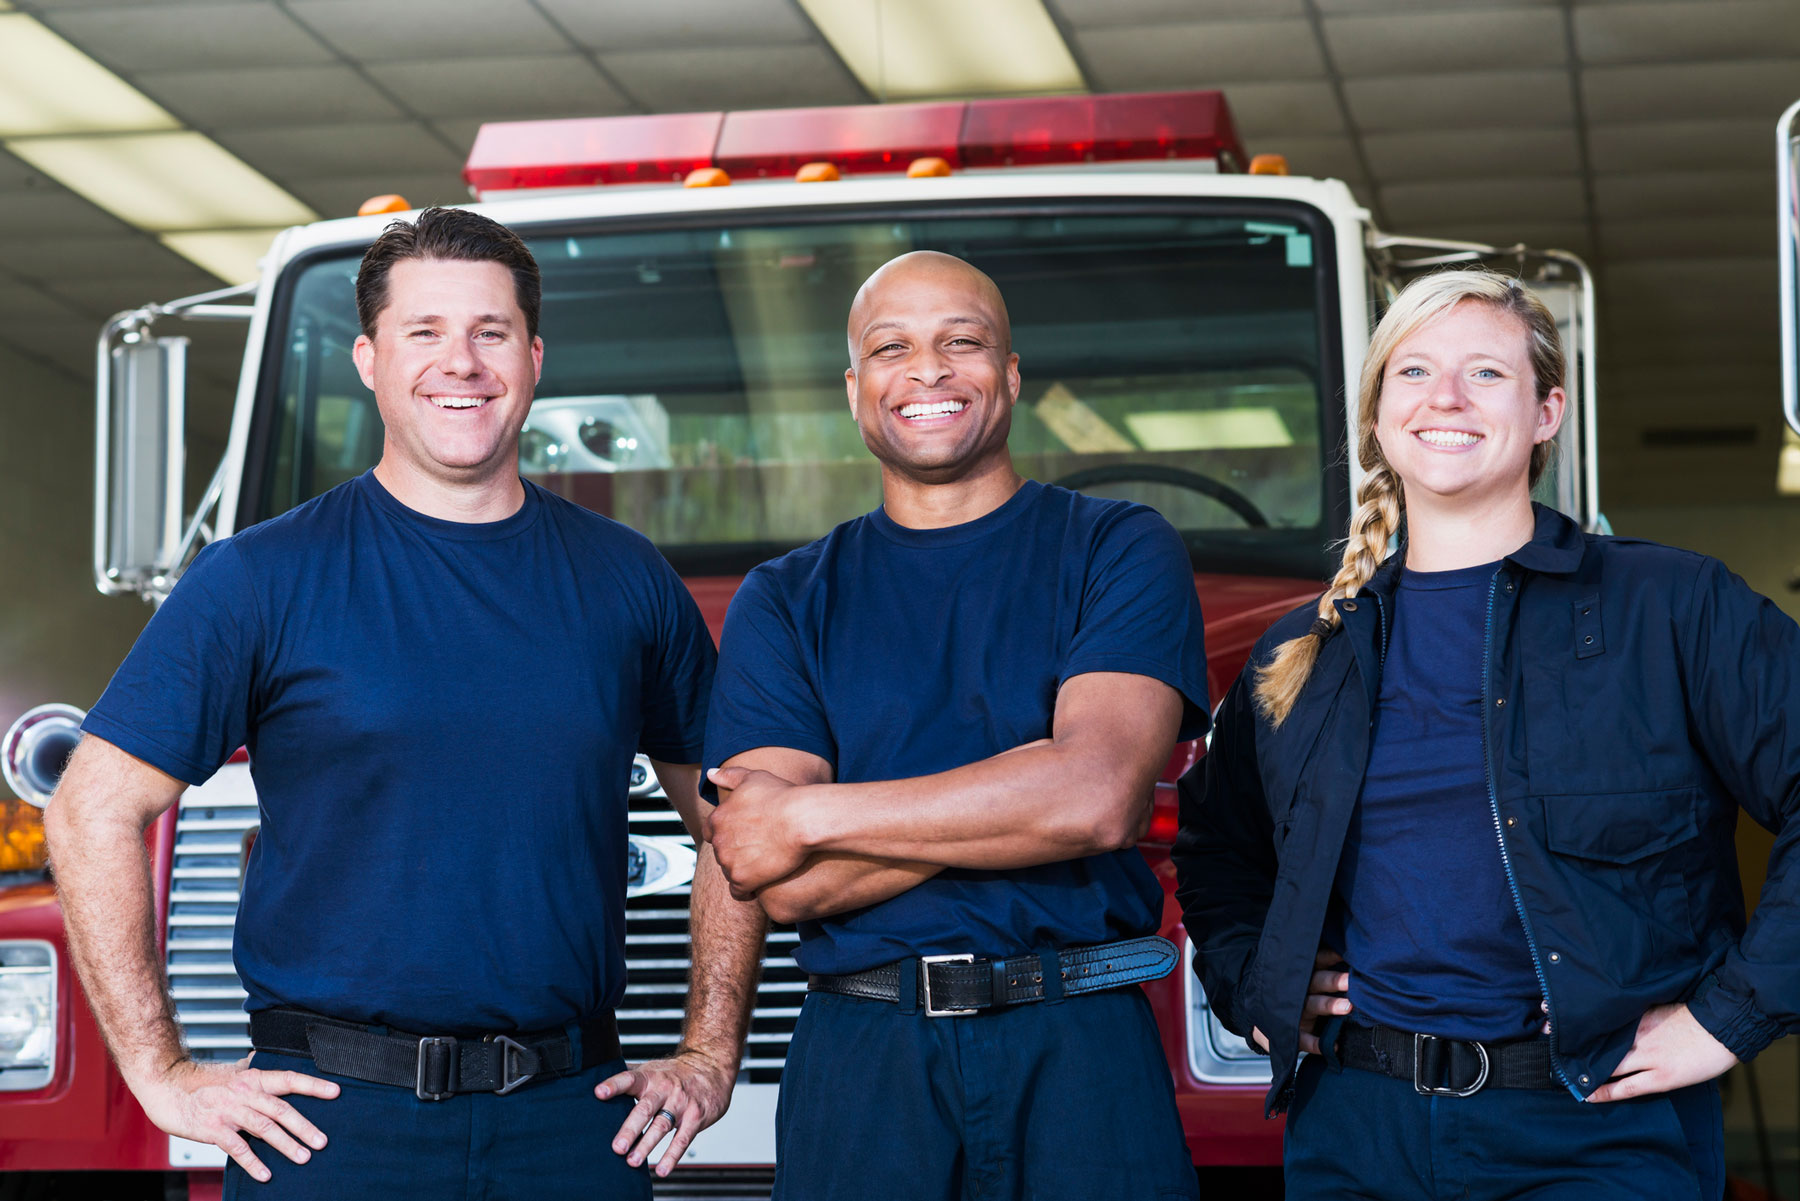 men and women firefighters standing in front of fire truck, smiling